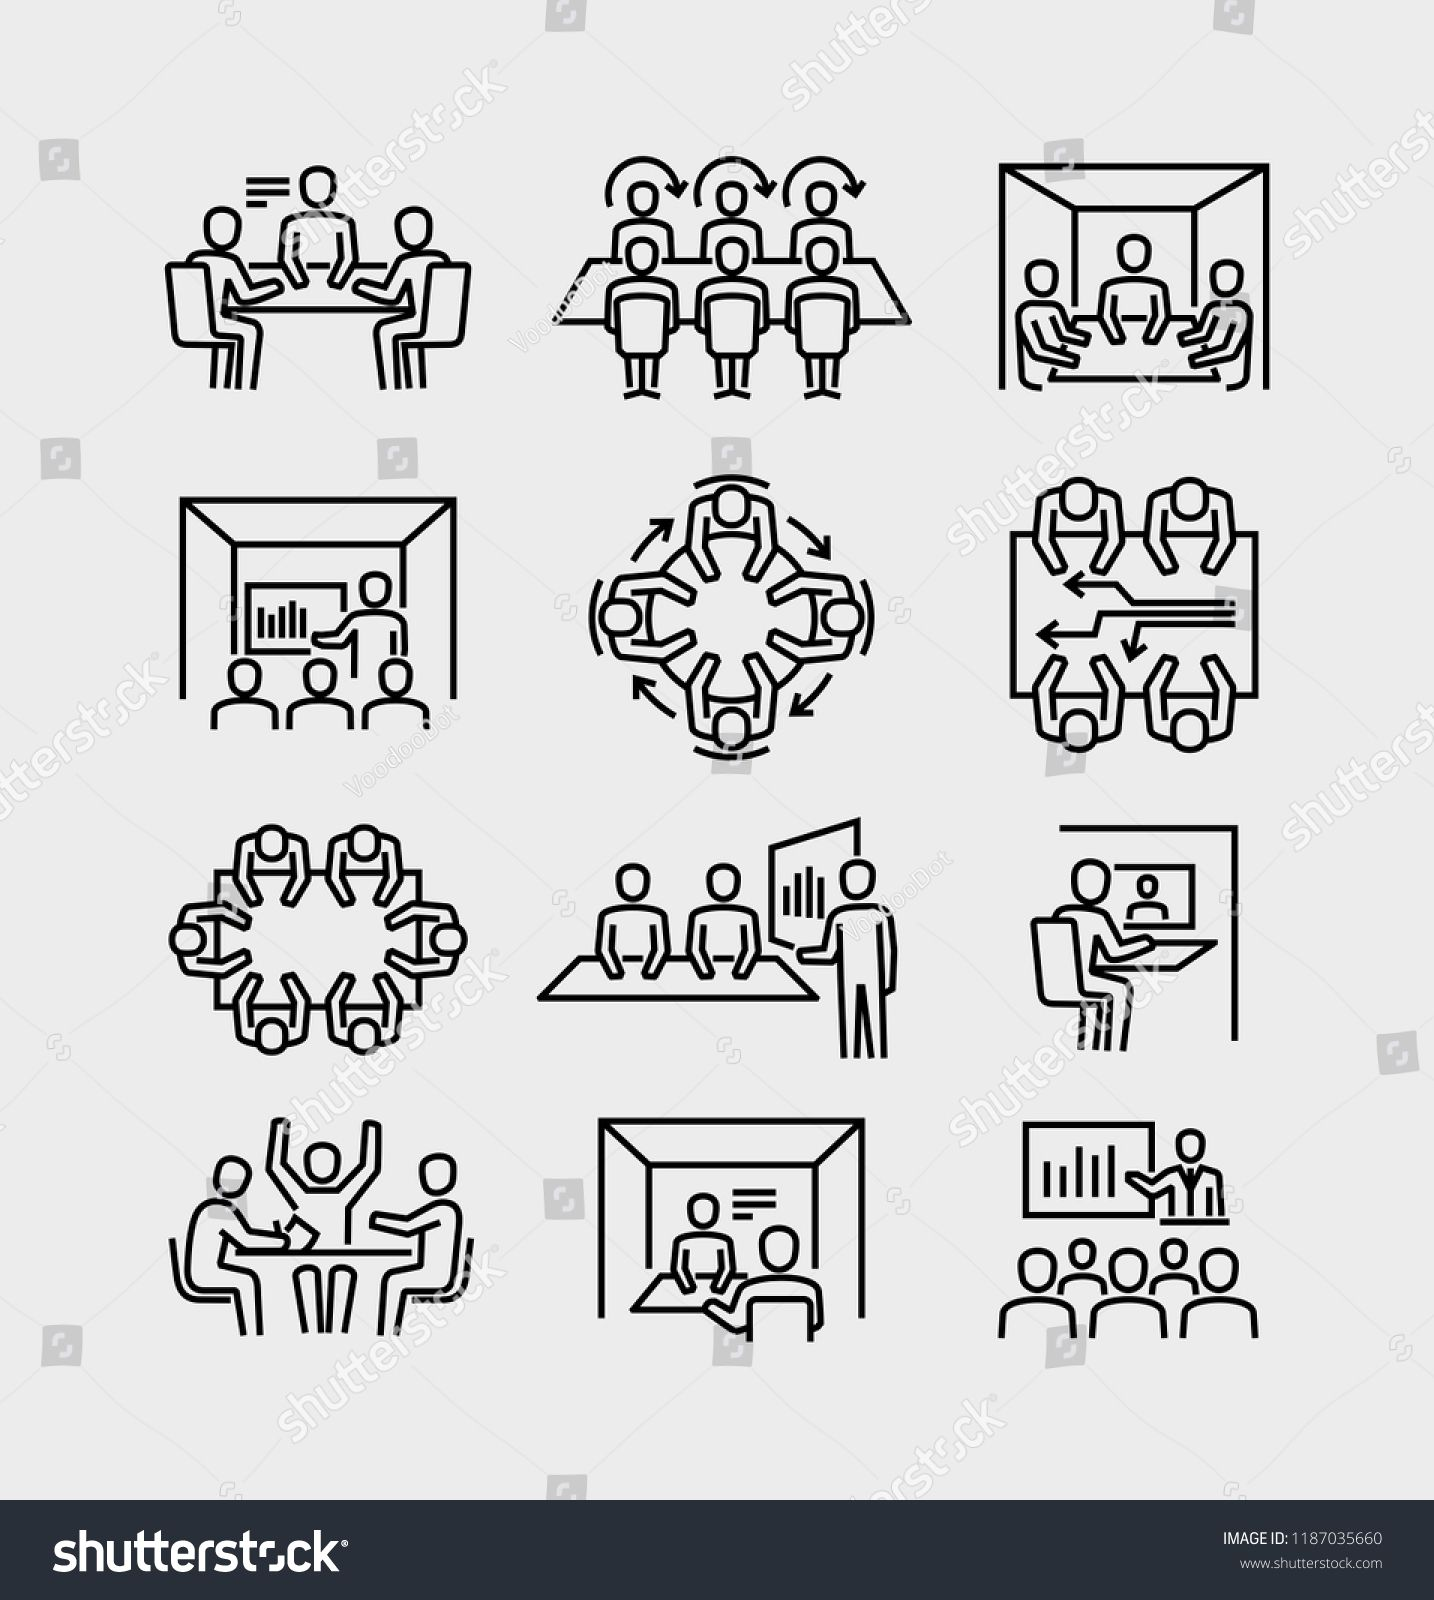 Business Meeting Room Vector Line Icons Ad Sponsored Room Meeting Business Icons Business Icon Business Advertising Design Line Icon